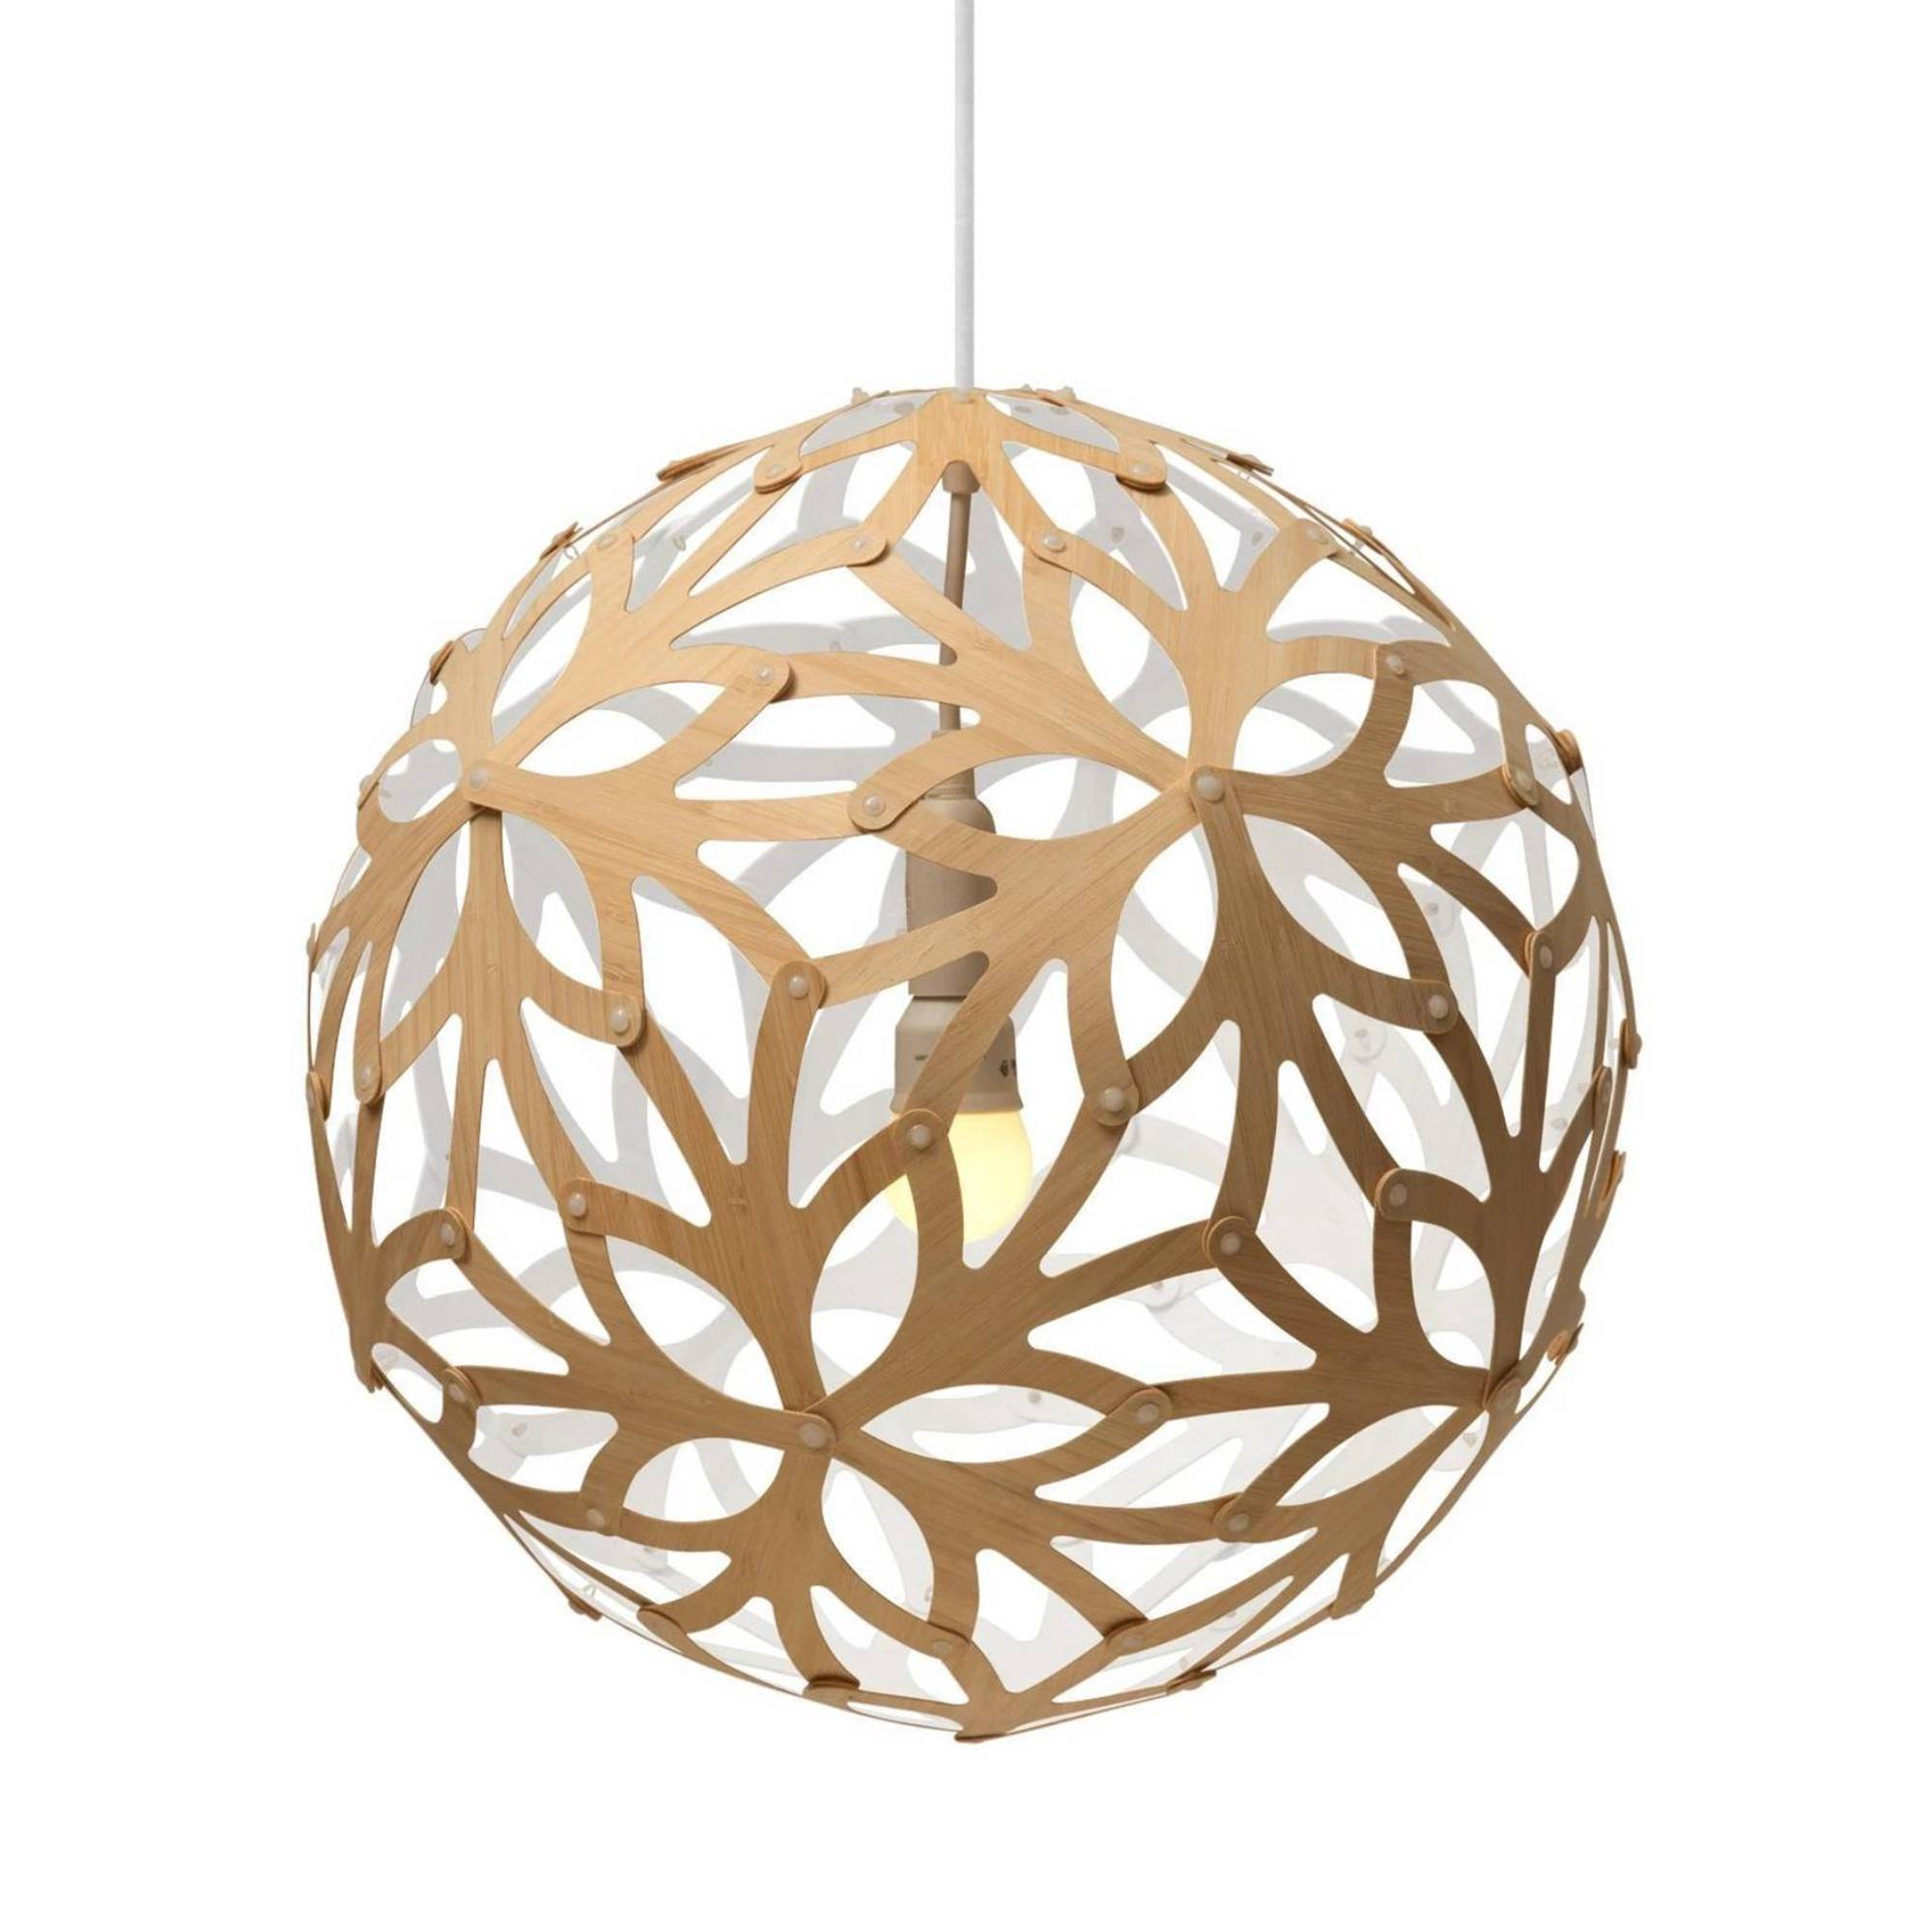 Floral Pendant Light: 800 + White